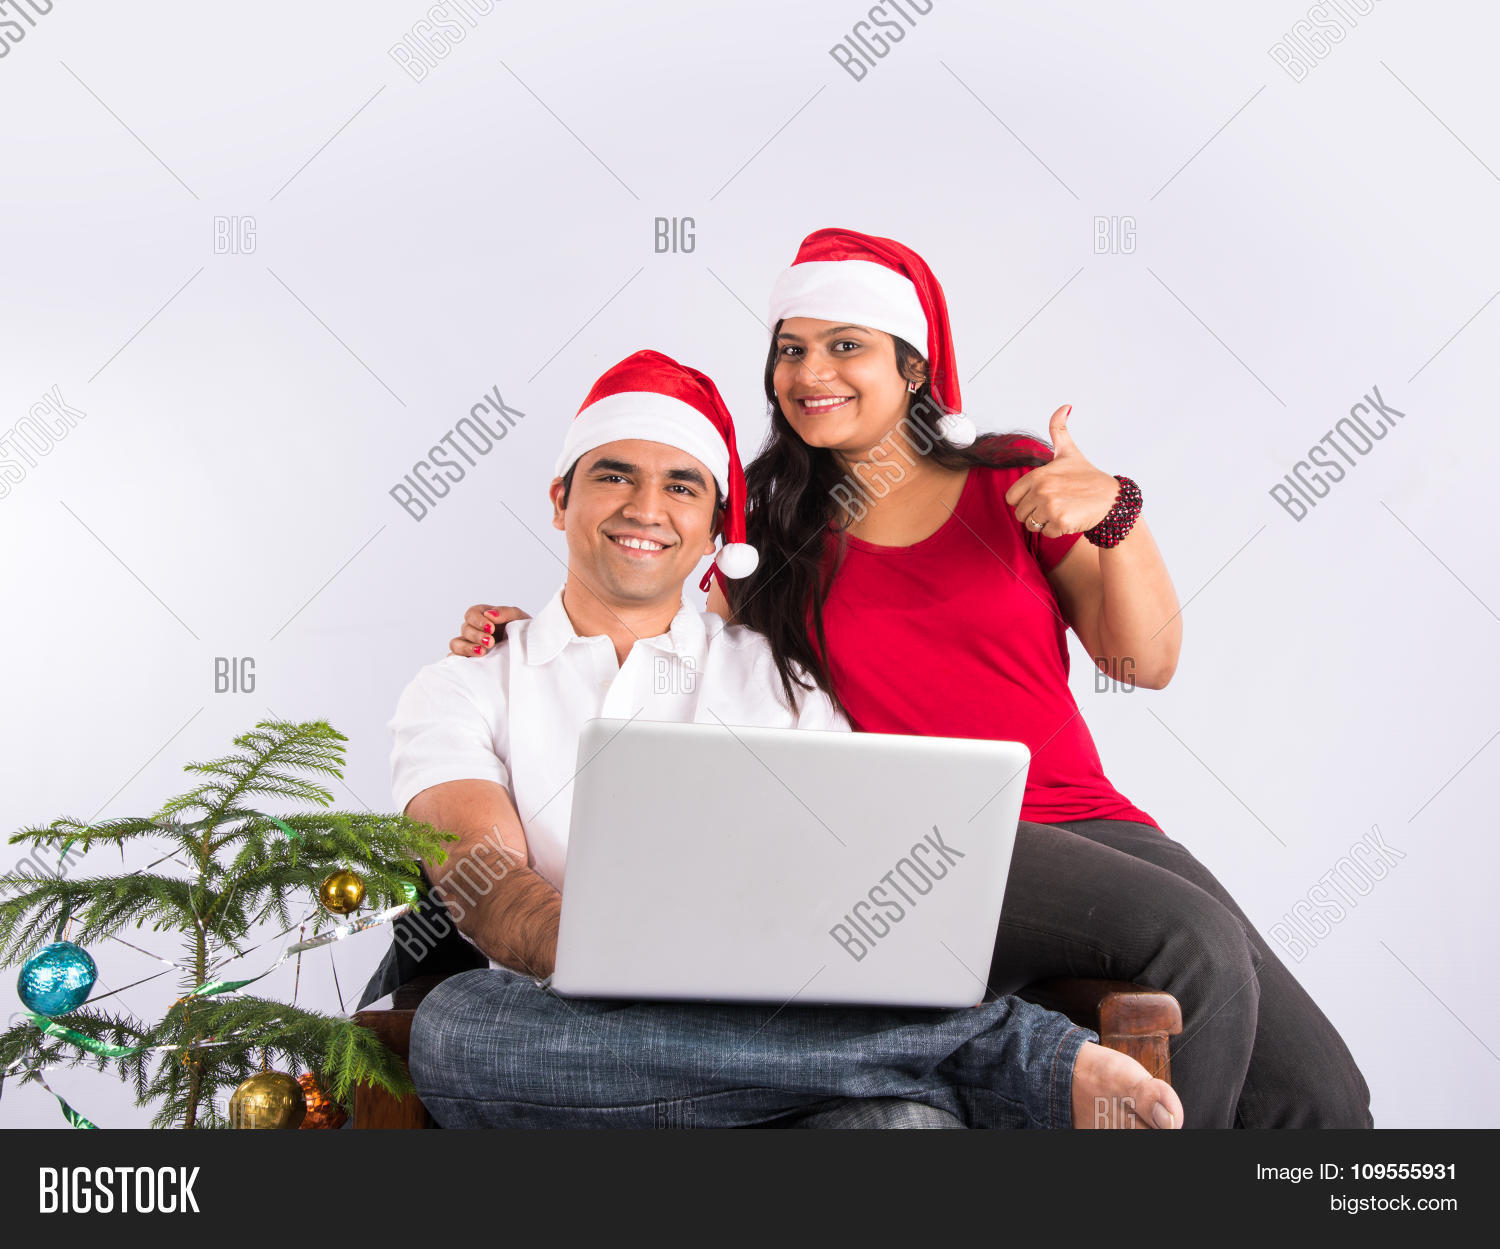 Young Indian Couple Image & Photo (Free Trial) | Bigstock